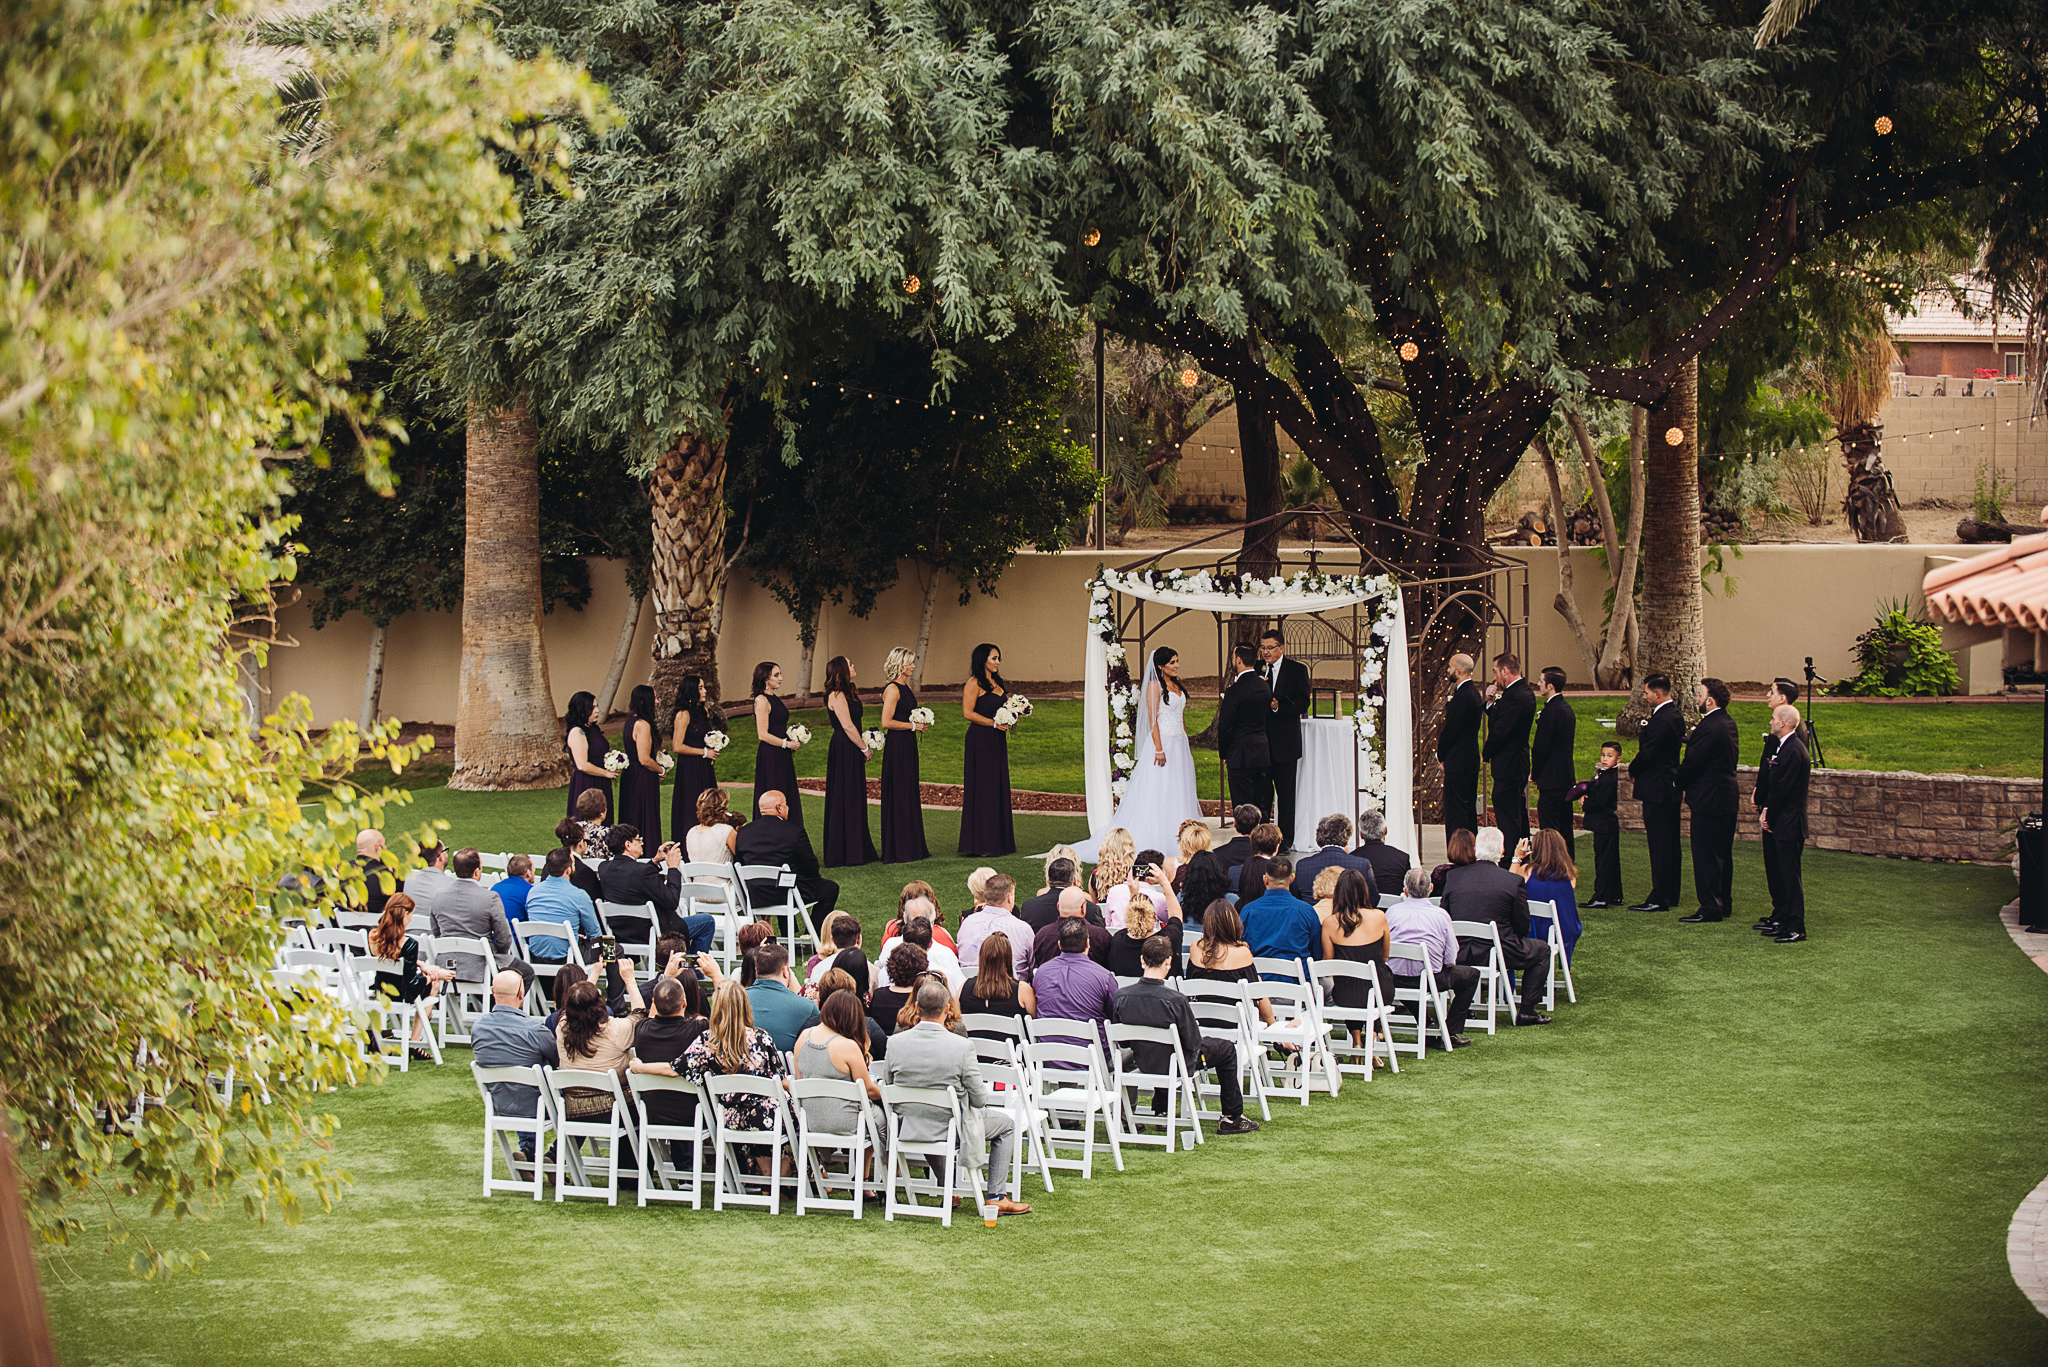 wedding-photography-az-andrew-ybanez-elemental-fotos-gilbert-arizona-10.jpg